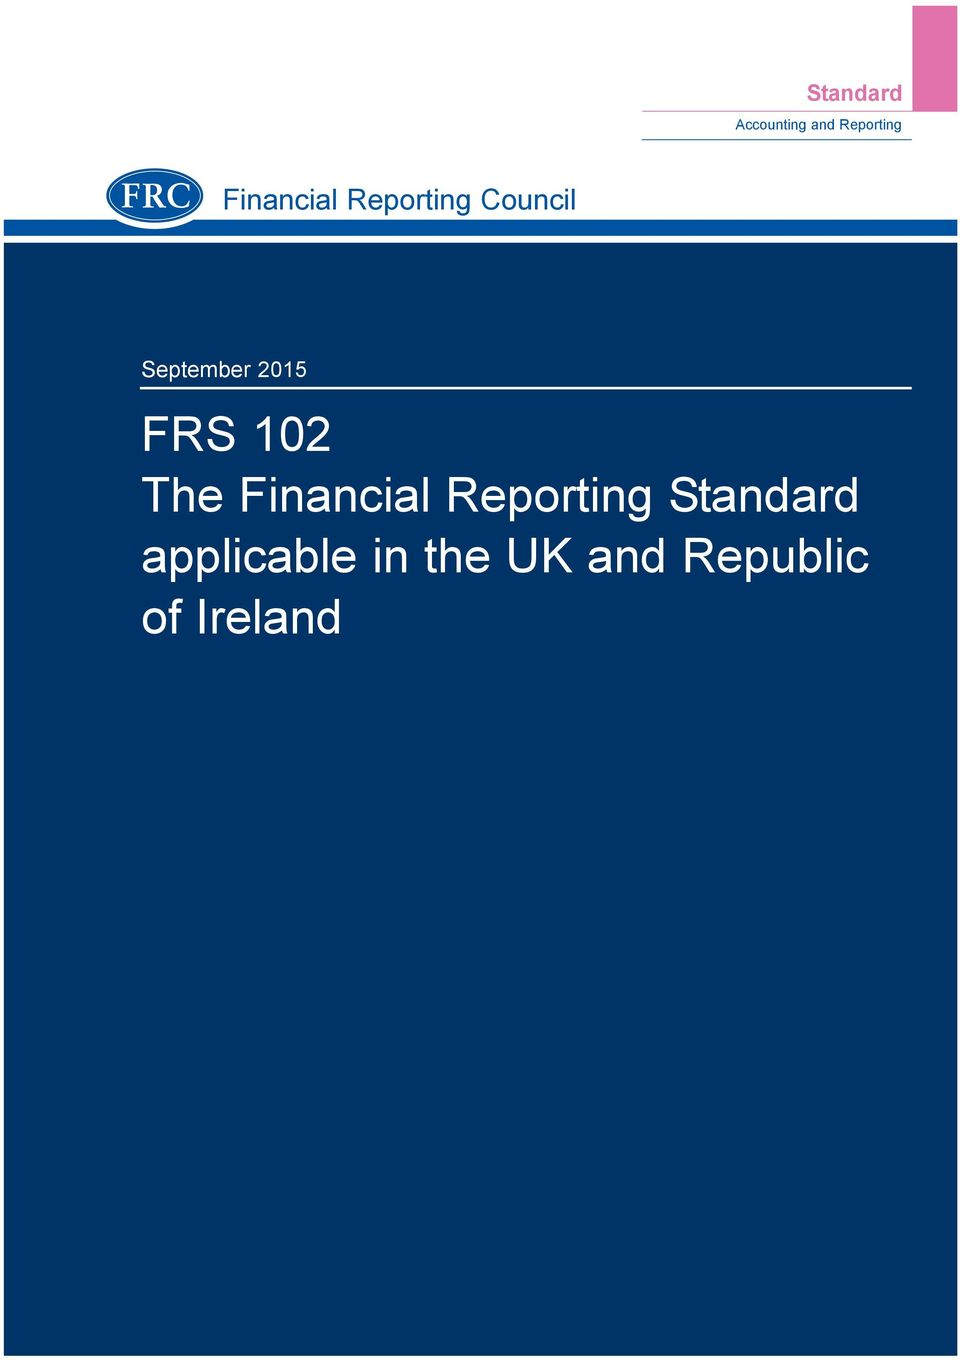 2015 FRS 102 The Financial Reporting